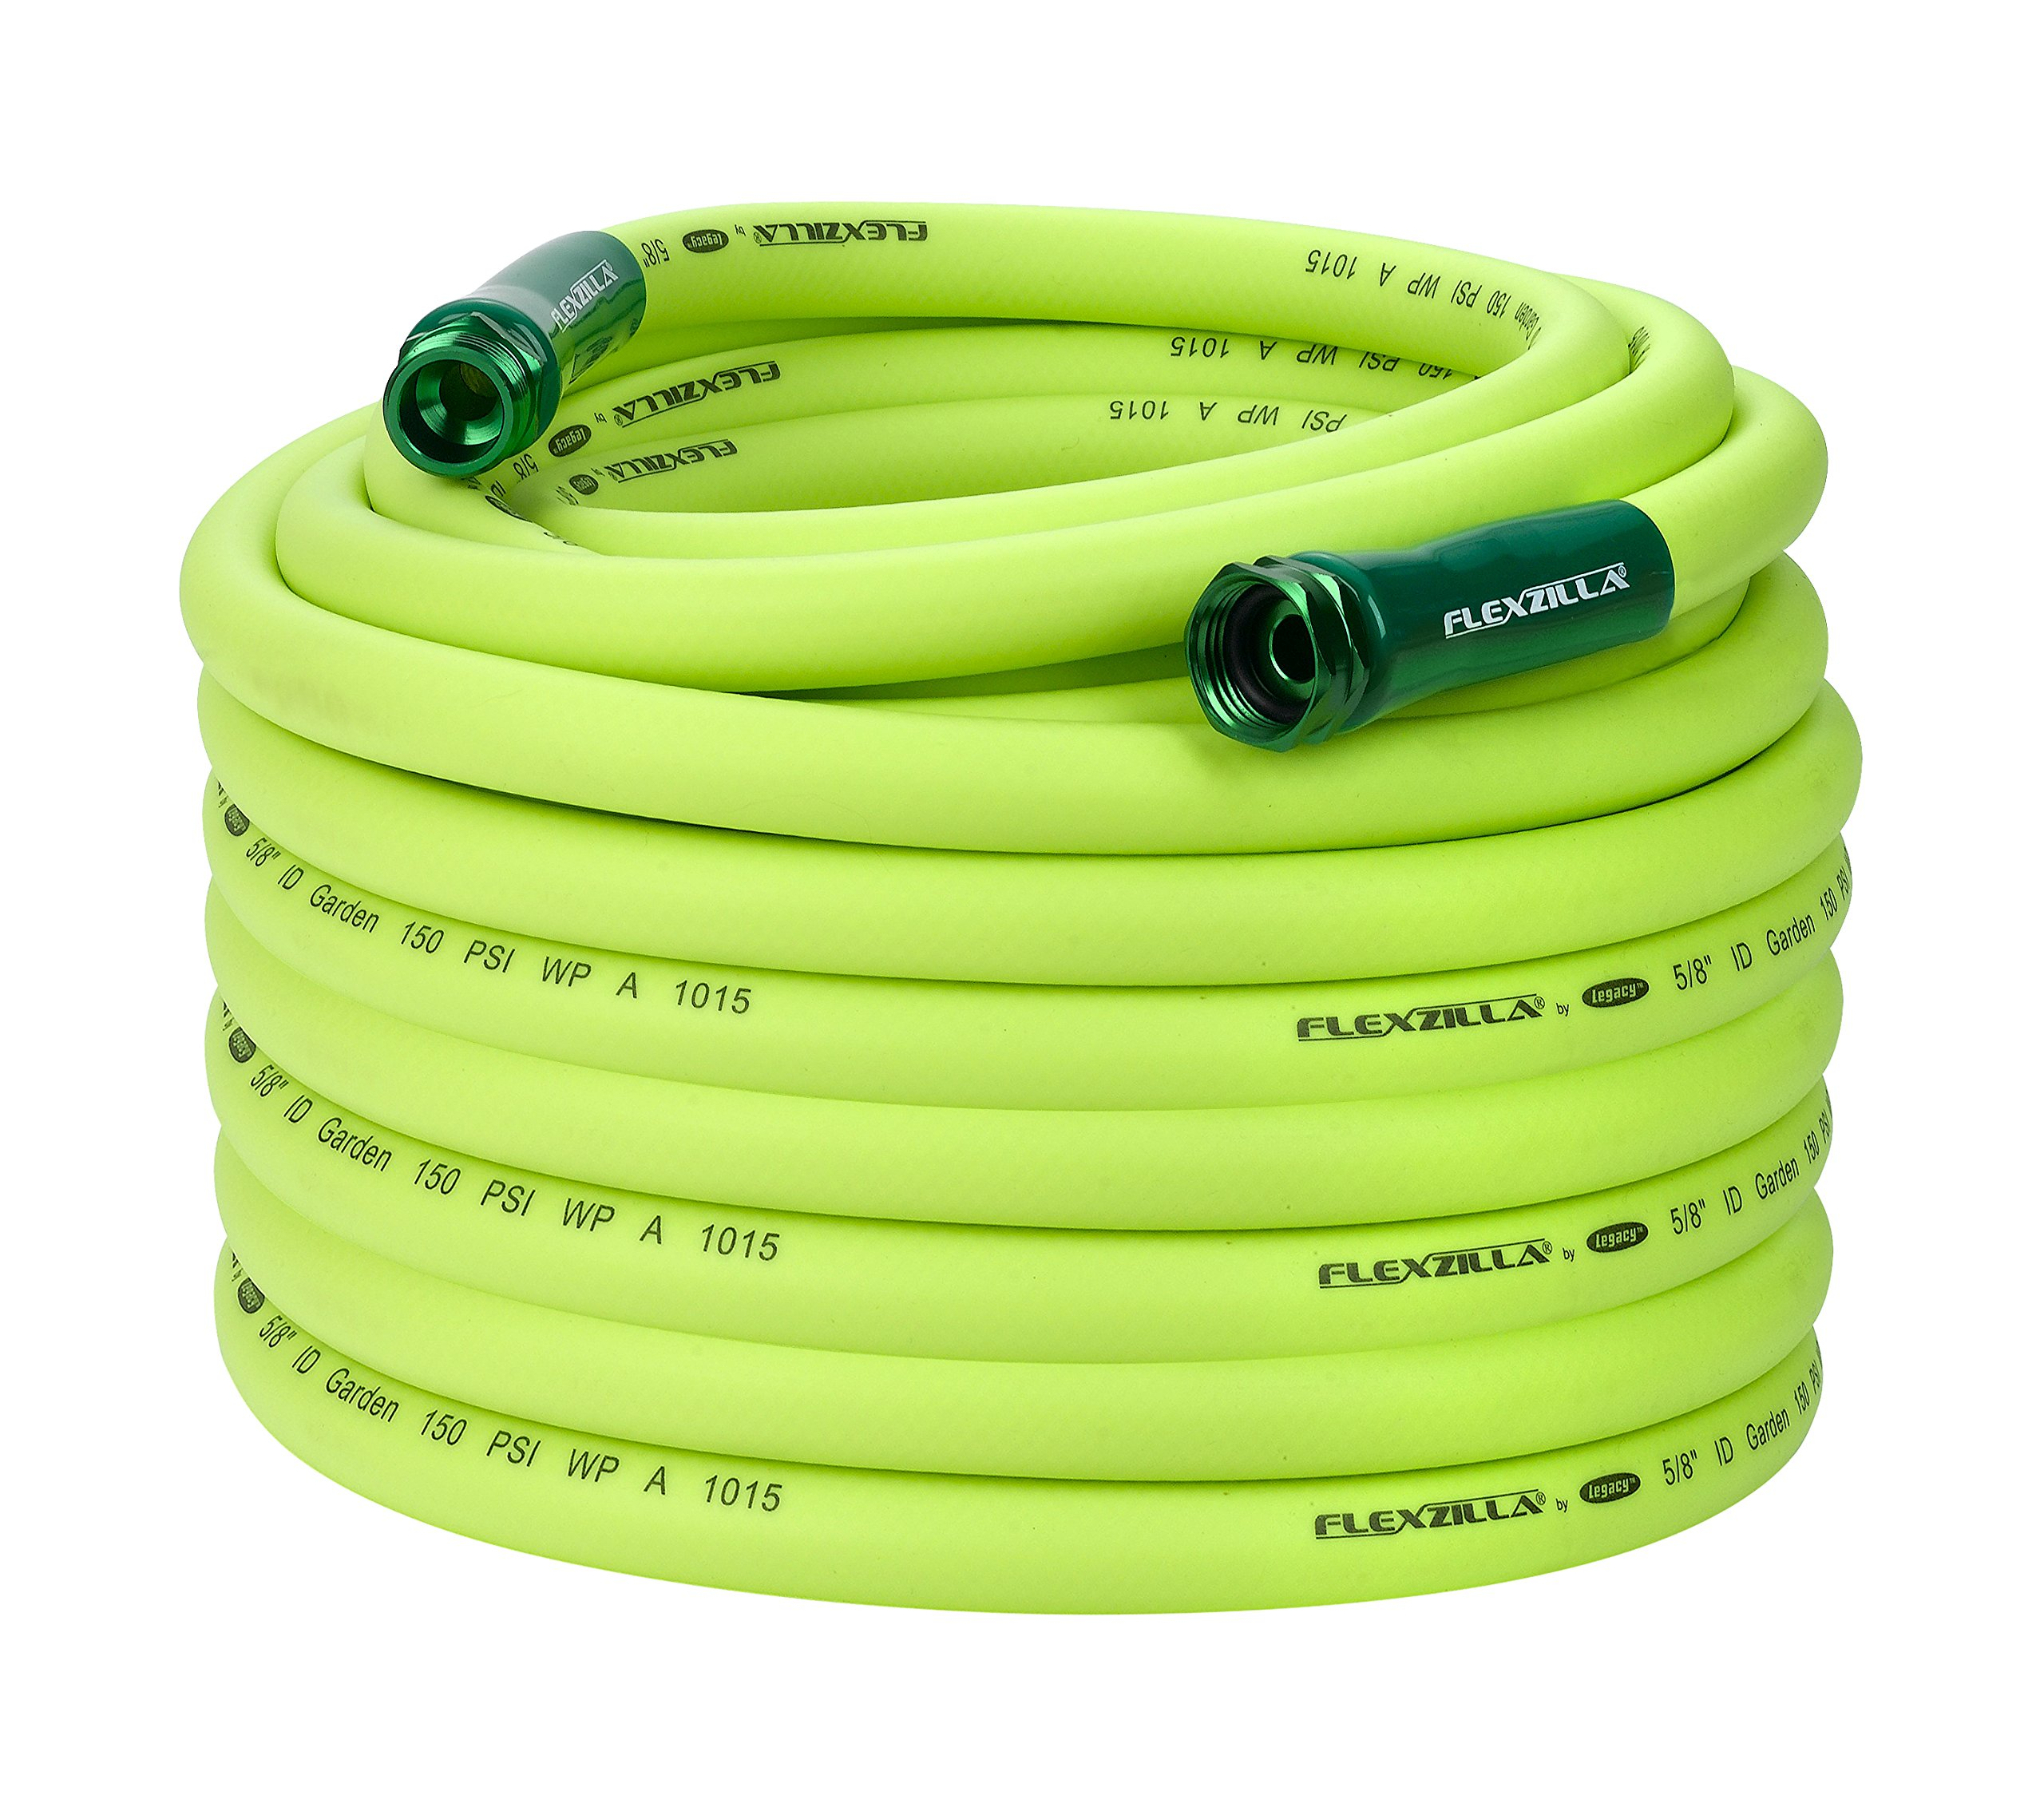 Flexzilla Garden Hose, 5/8 in. x 100 ft, Heavy Duty, Lightweight, Drinking Water Safe - HFZG5100YW